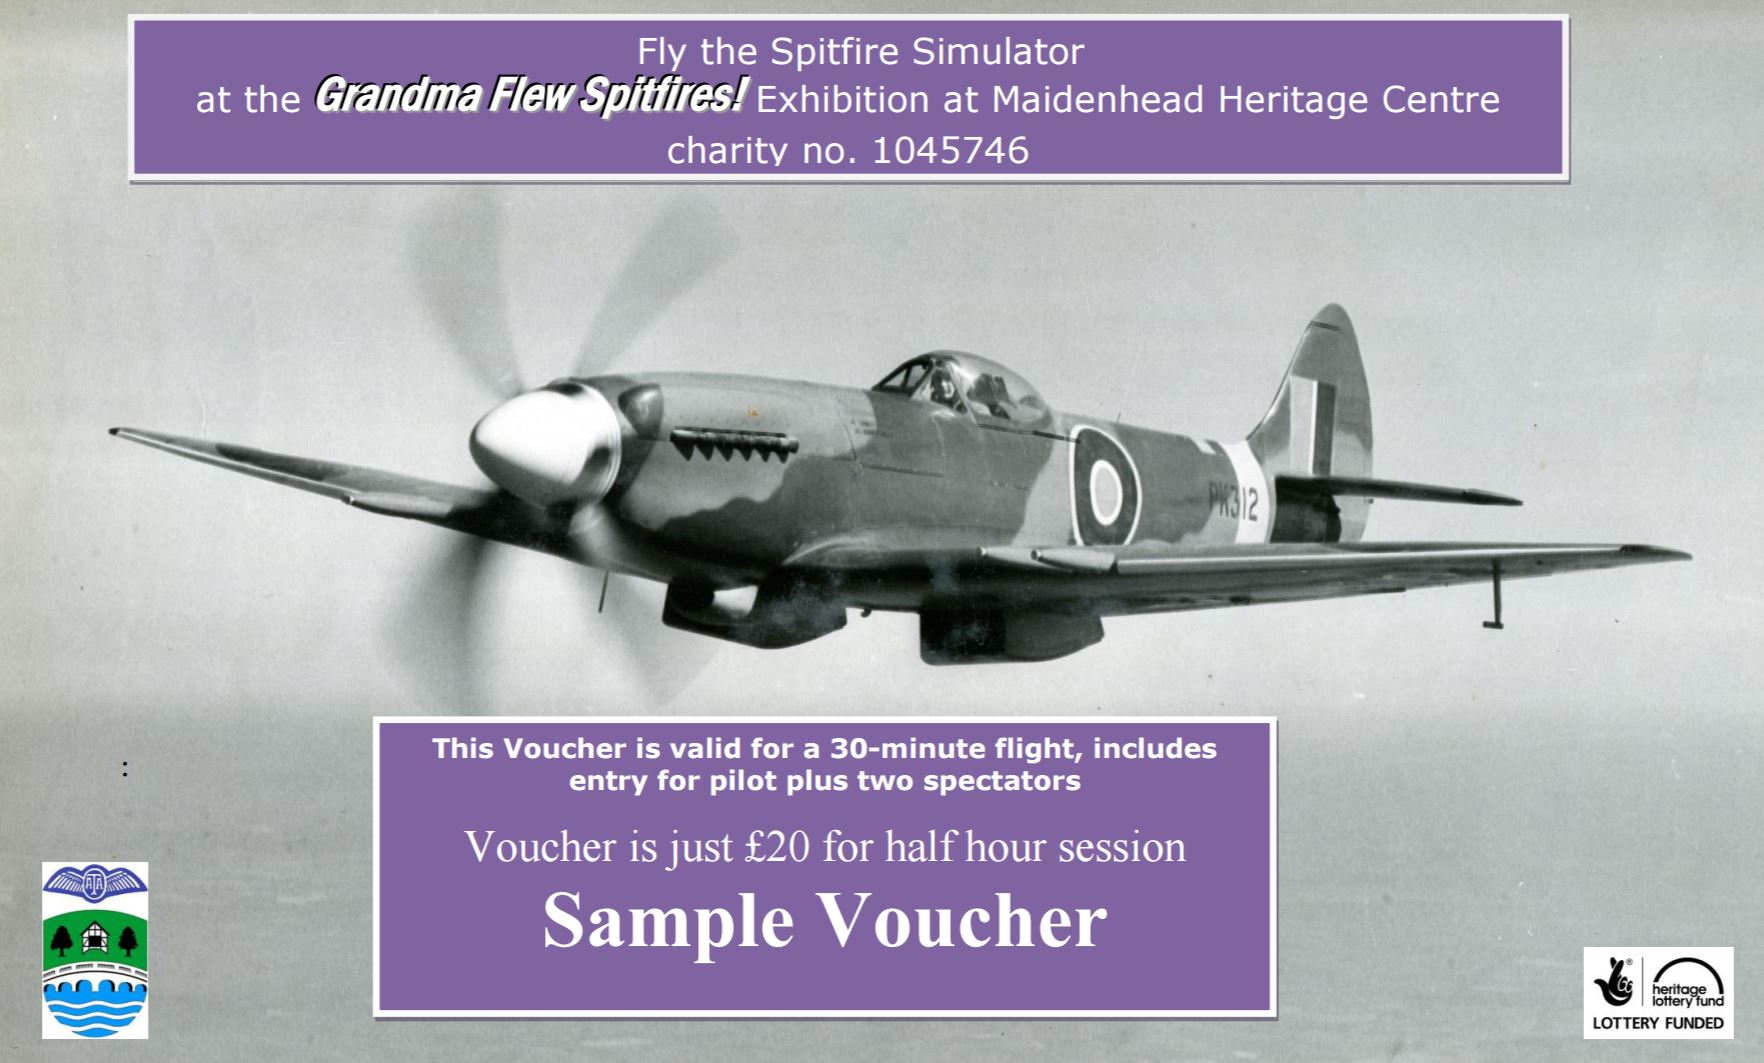 Spitfire Simulator Gift Voucher Website Sample